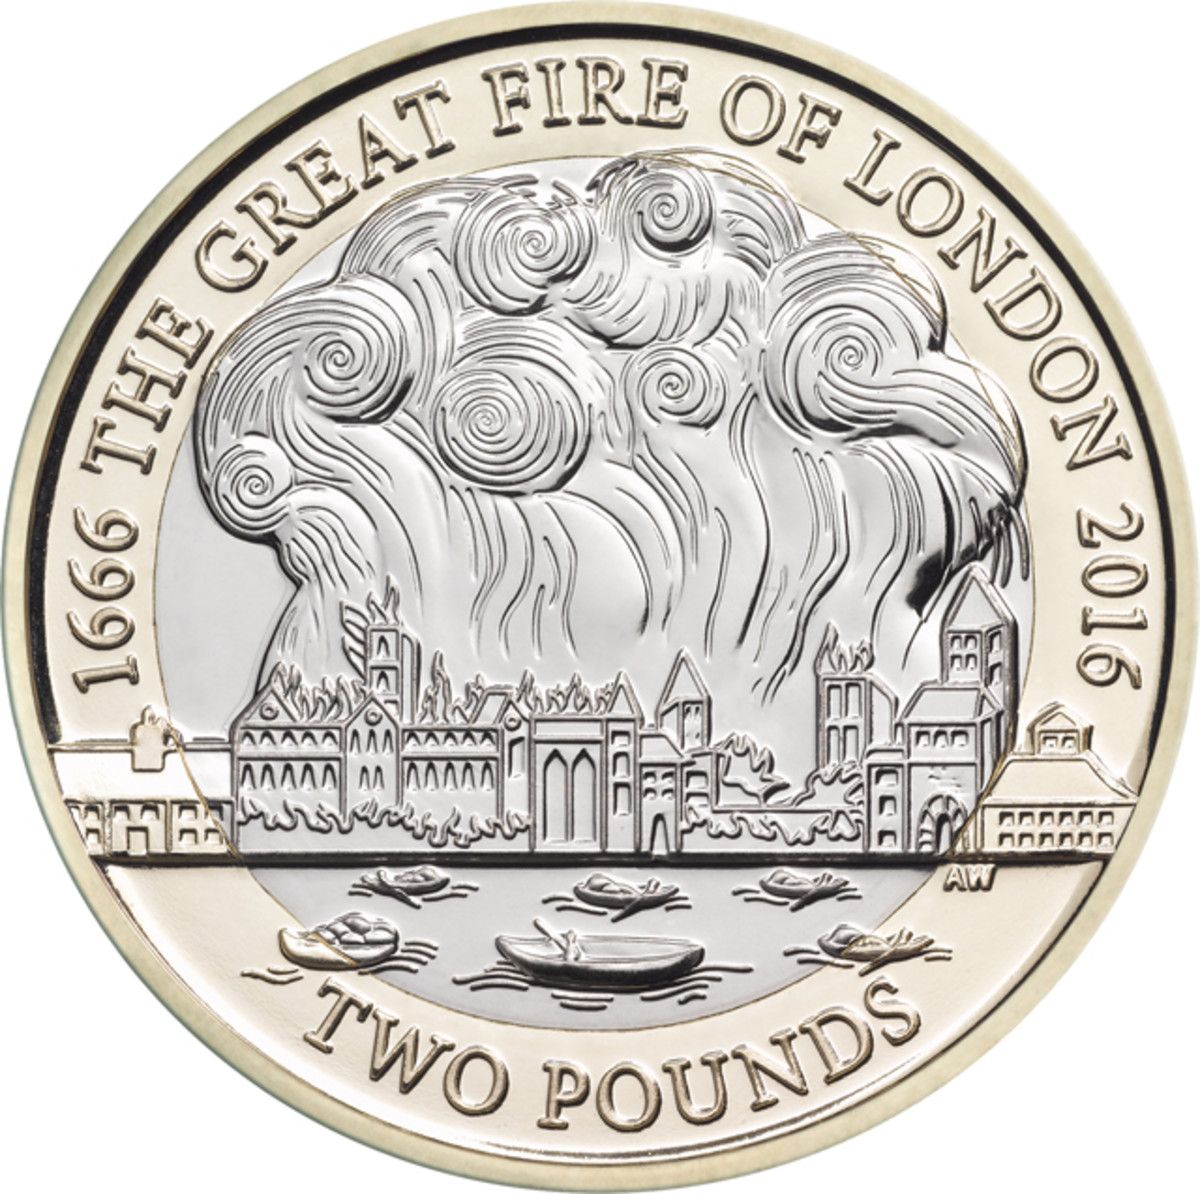 On the £2 coin struck for the 350th Anniversary of the Great Fire of London Aaron West has captured the event that changed the face of the City of London forever